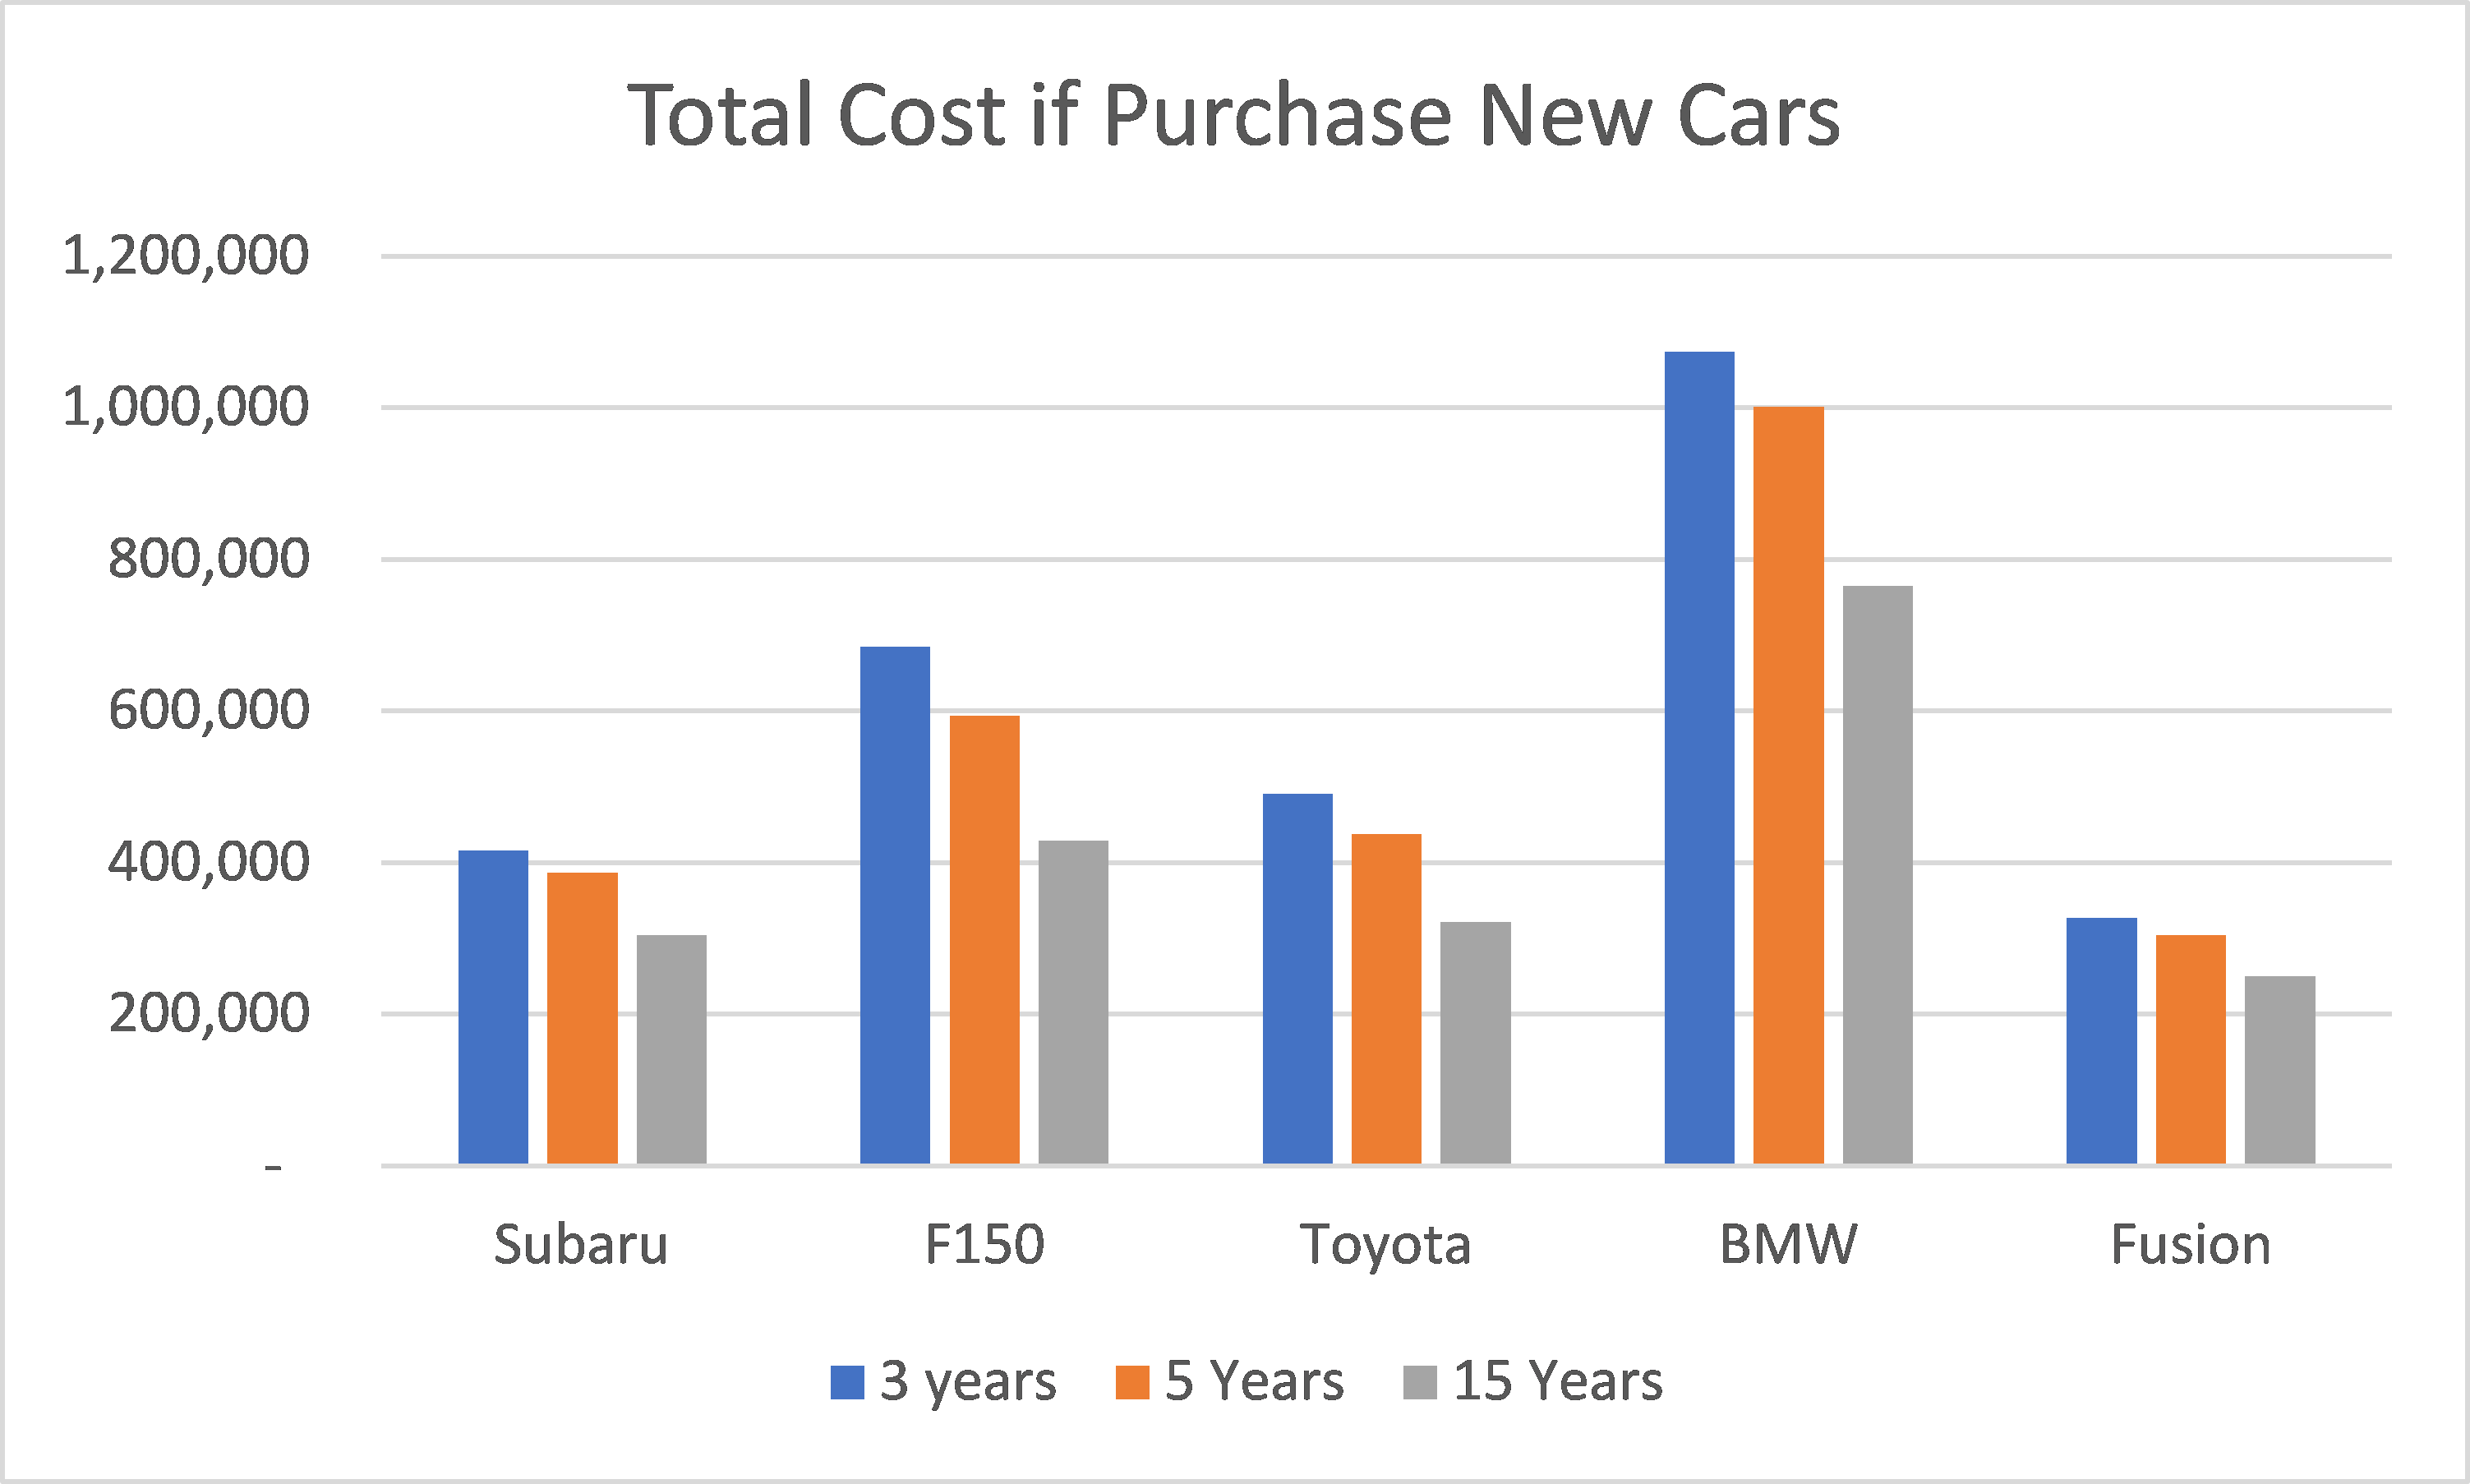 Total Cost of New